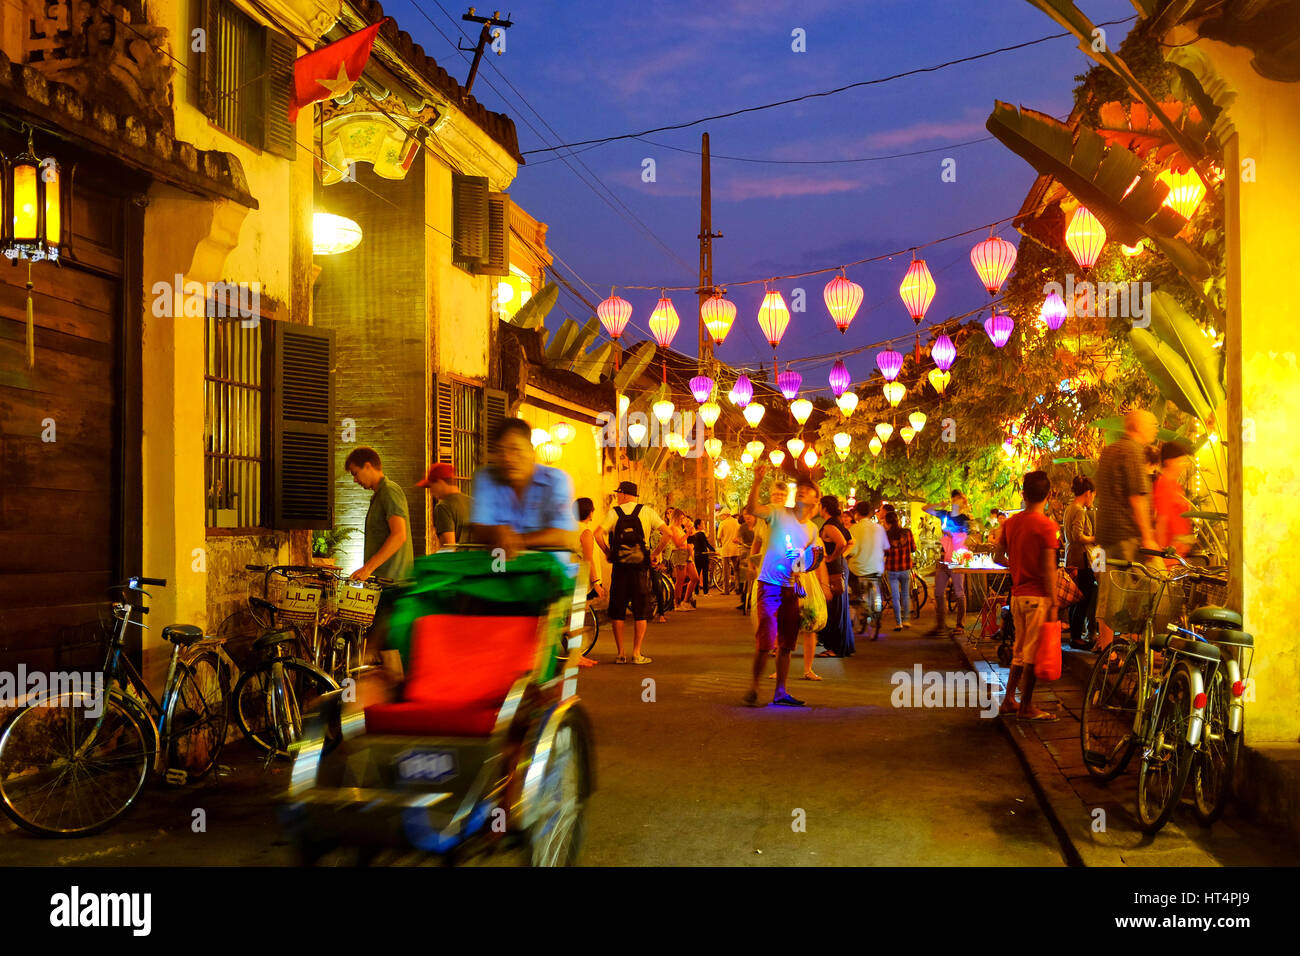 Locals and tourist in Tran Phu street at night, Hoi An, Vietnam - Stock Image